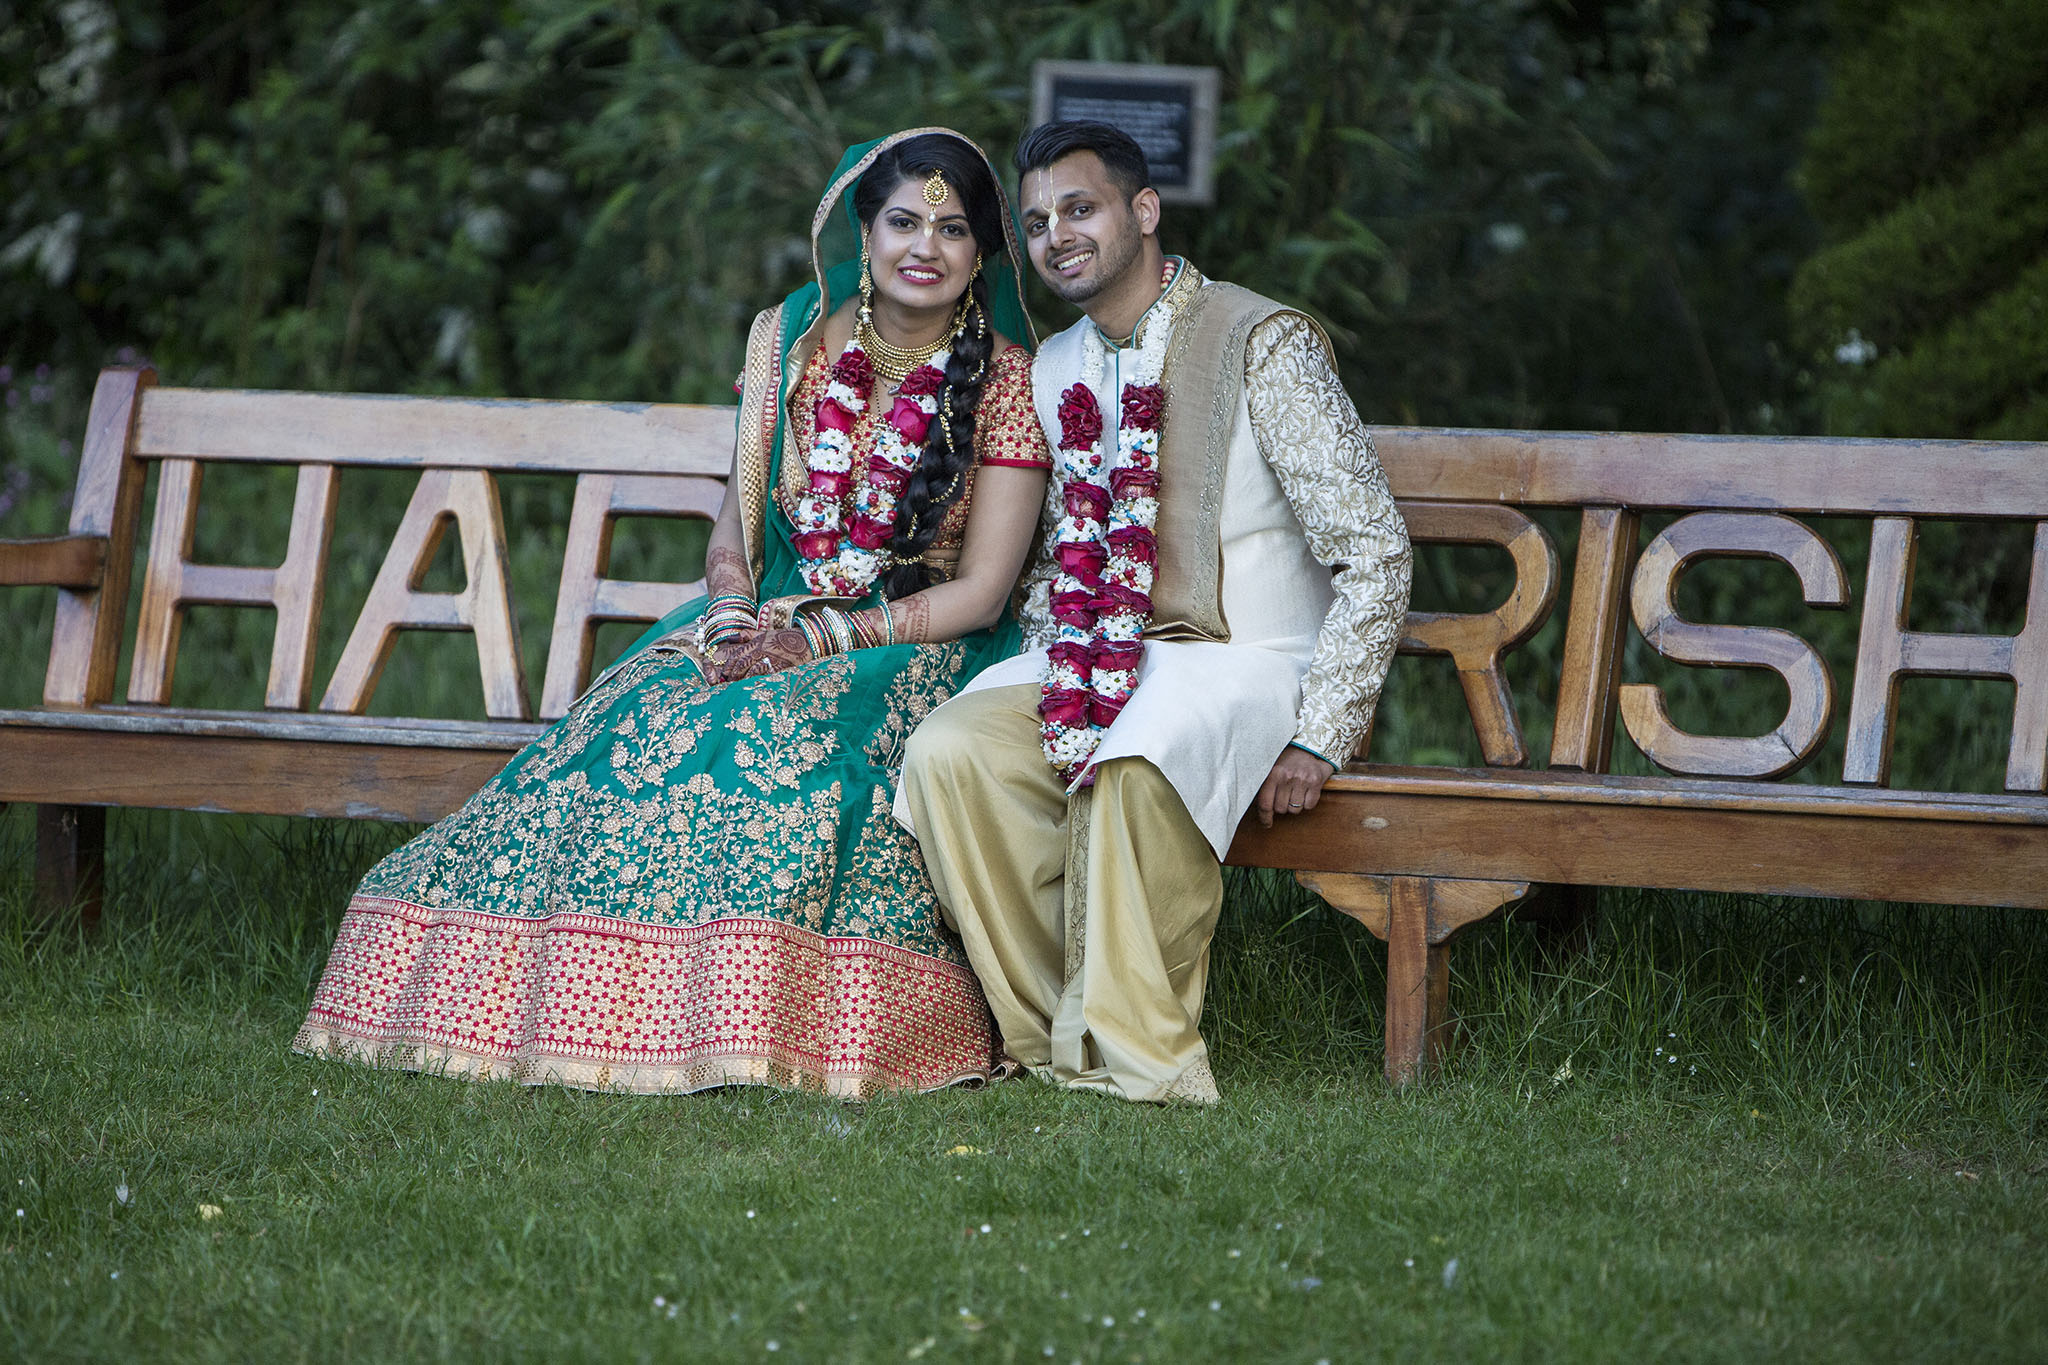 elizabethgphotography_kingslangley_hertfordshire_fineart_indian_wedding_photography_jigna_bhuja_bhaktivedanta_manor_watford_16.jpg